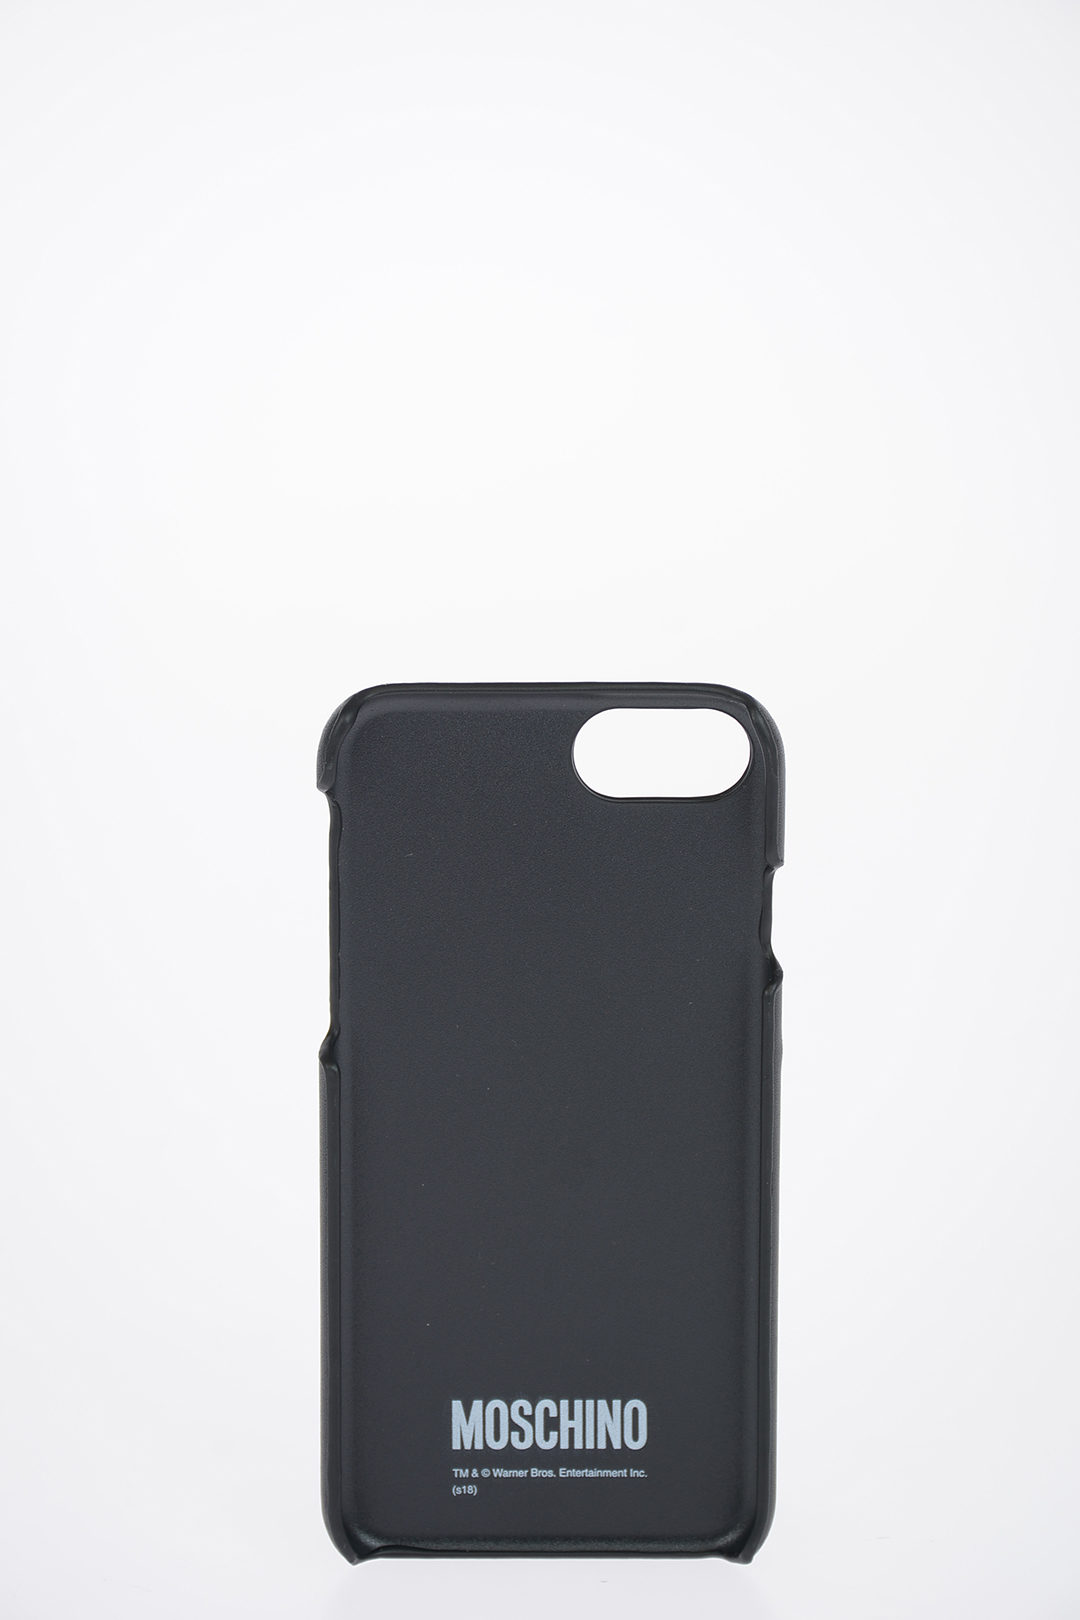 embroidered iphone 6/6s/7/8 cover